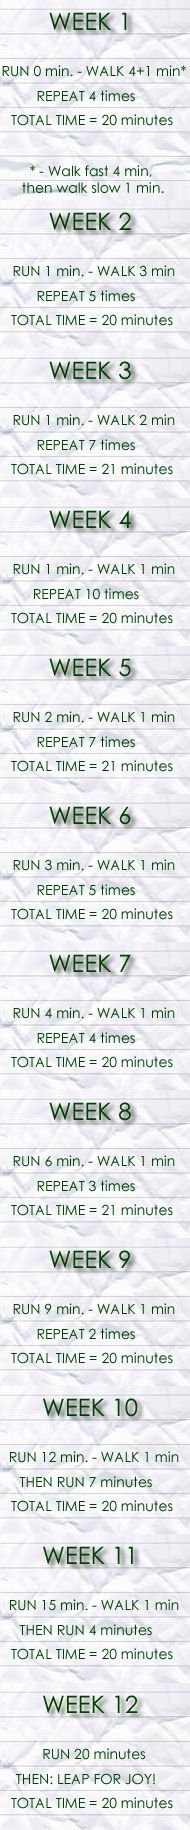 I could do this! It is time to get back on   track and in shape!